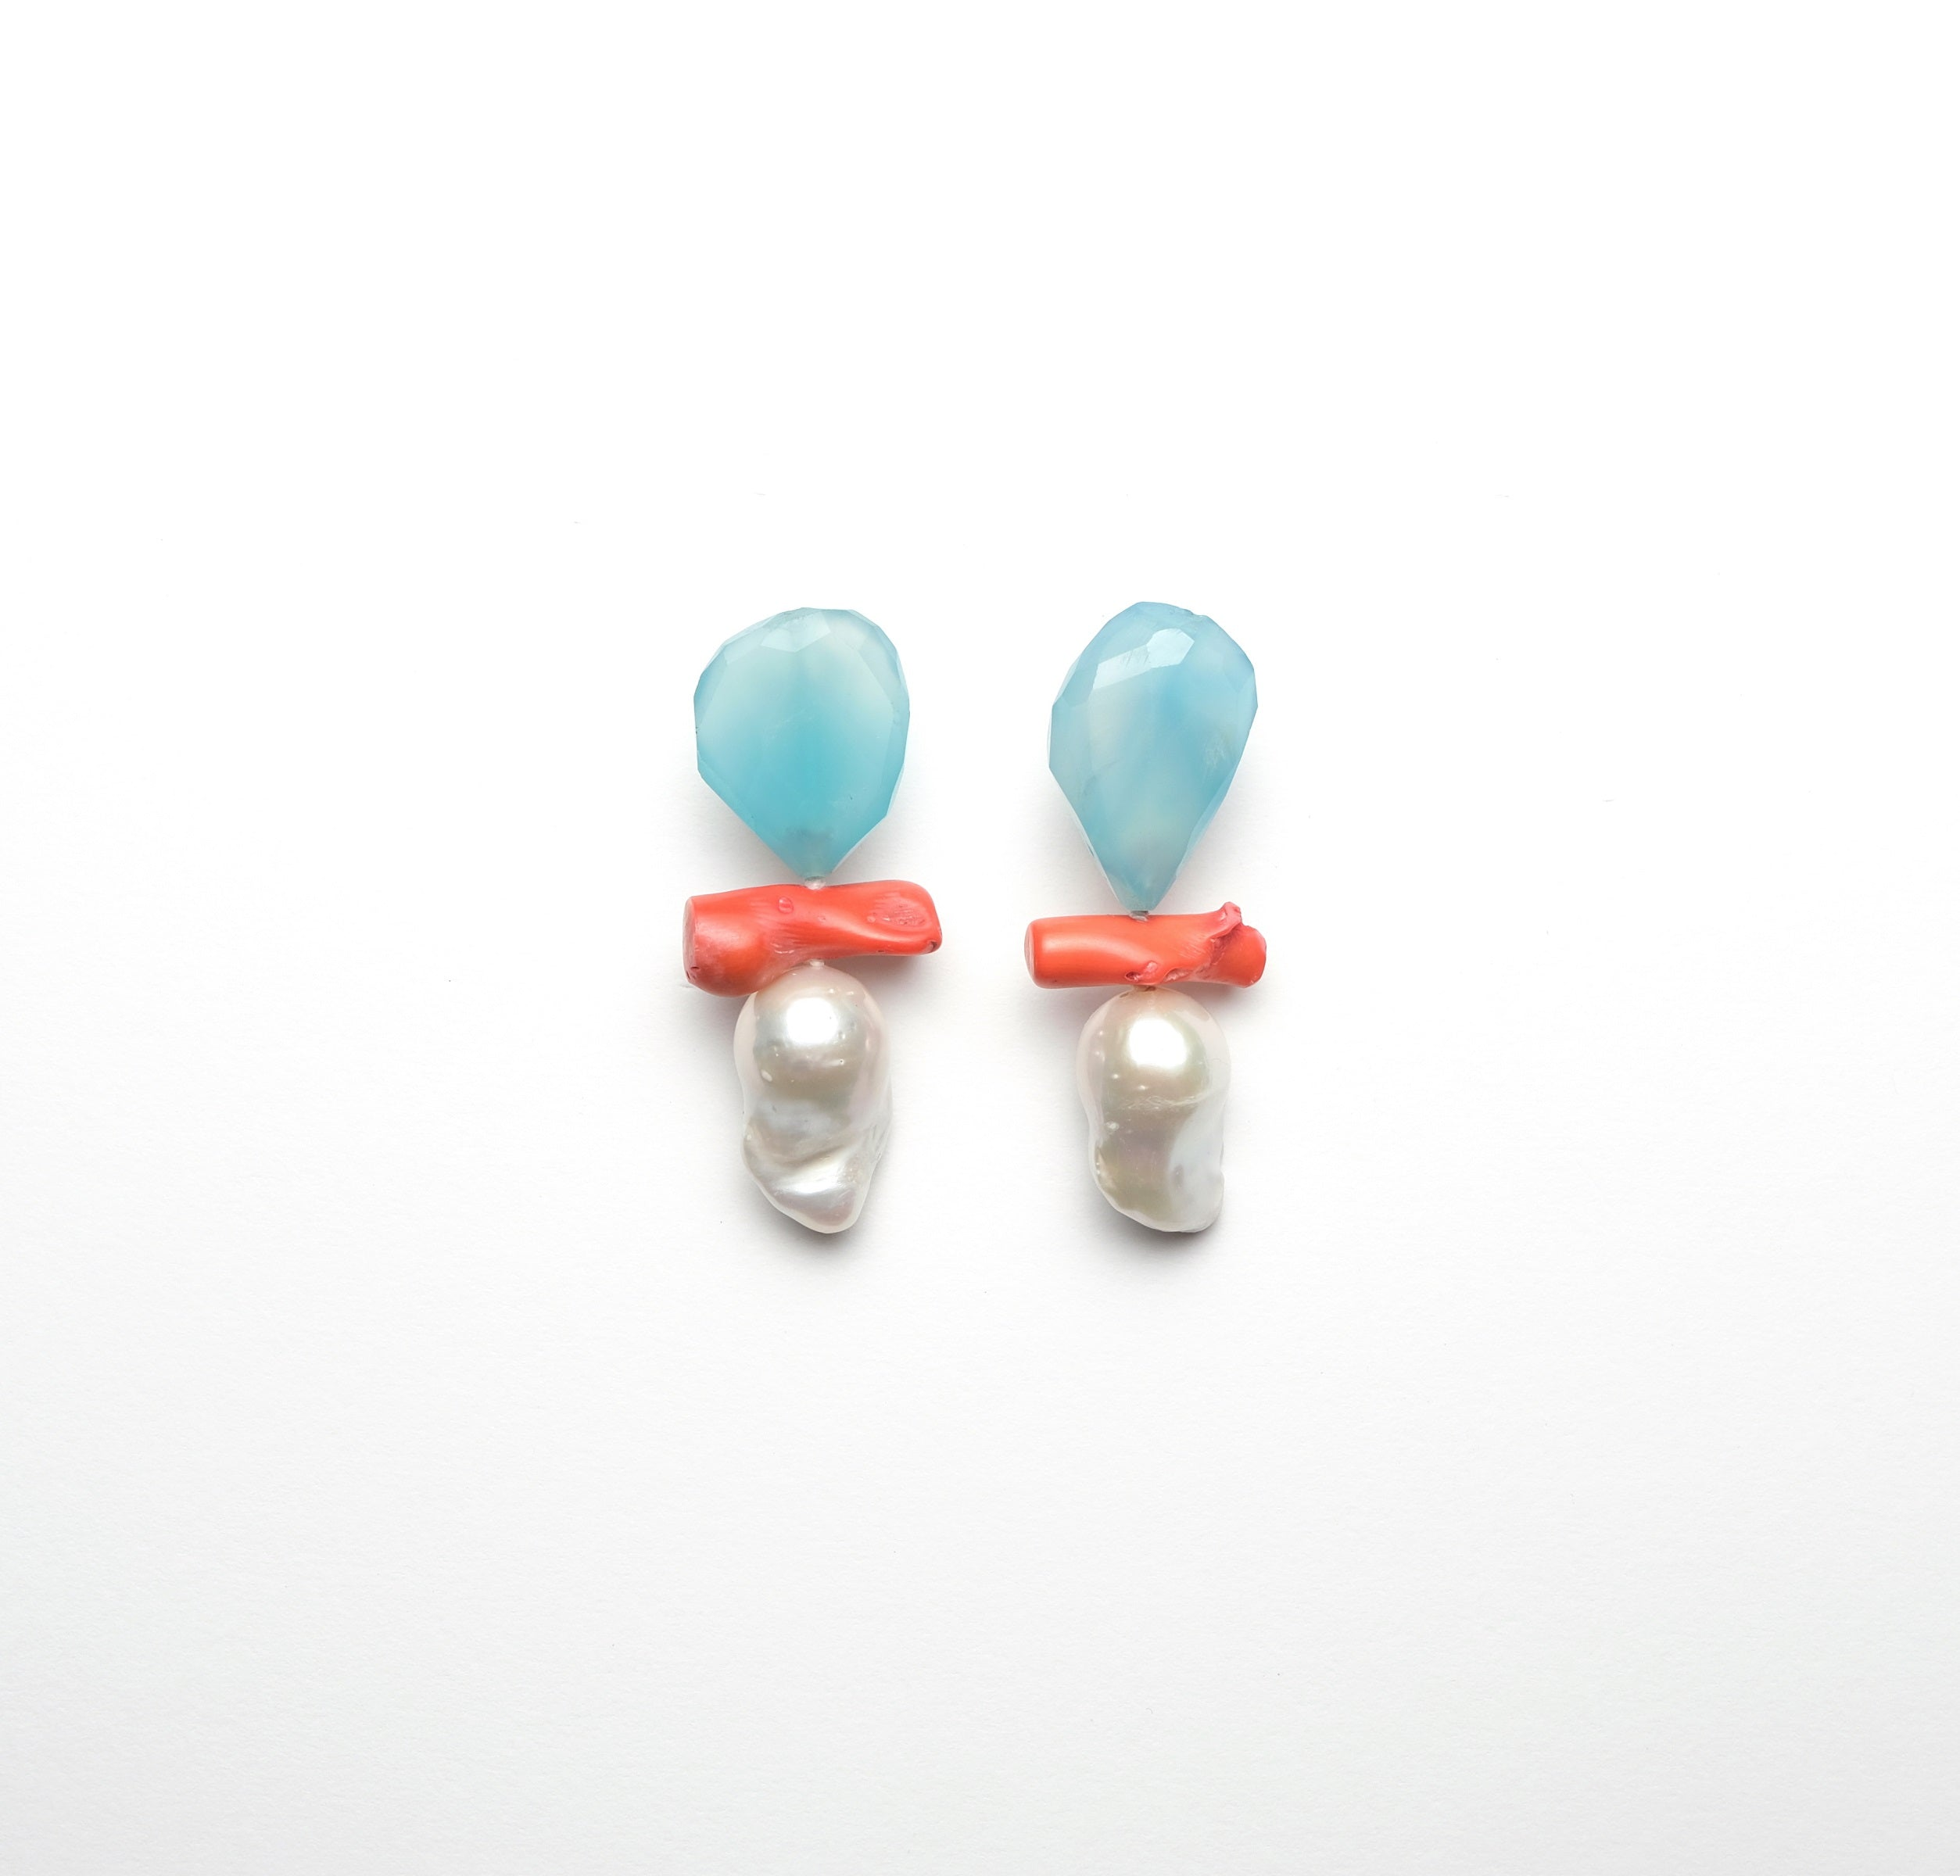 Earclips in baroque pearls, dyed agath and coral